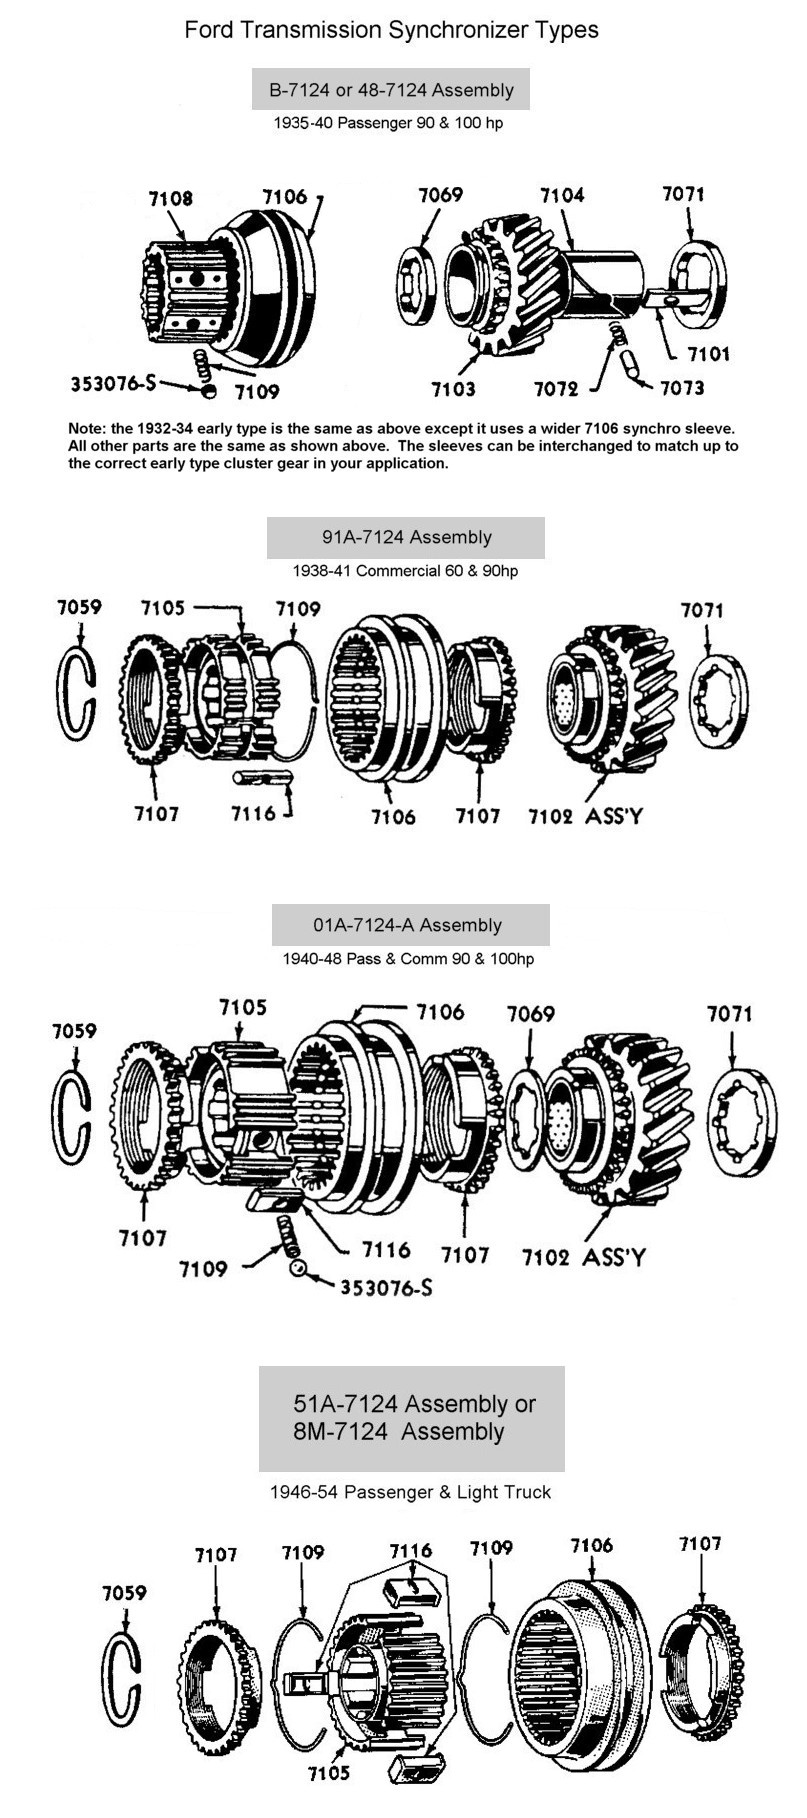 Flathead Parts Drawings Transmissions Electrical Wiring Diagram For 194247 Chevrolet Passenger Cars Rear Mount Engine Trans 1932 To 36 Car